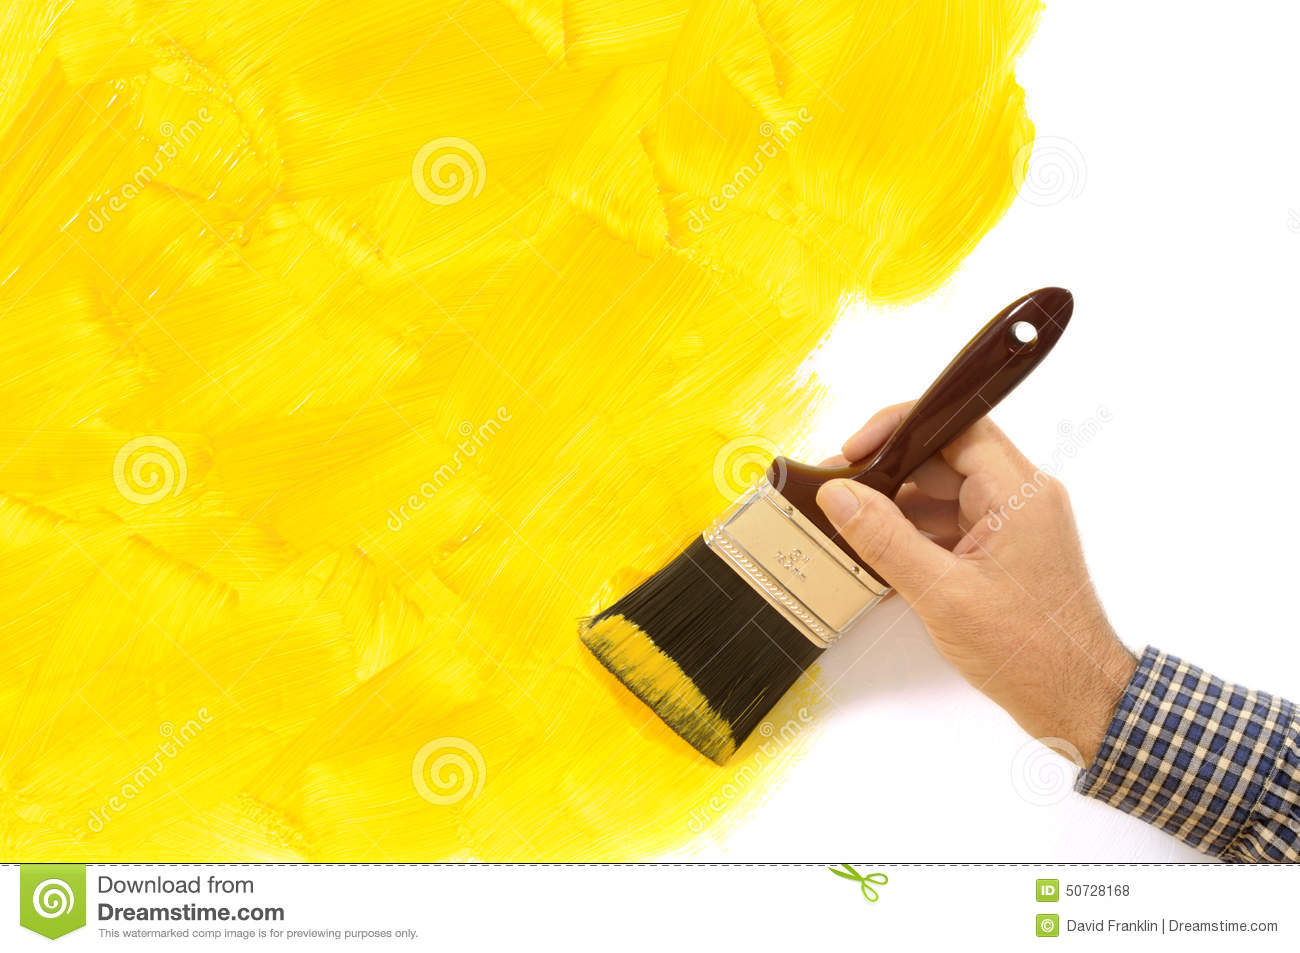 House Painting And Decorating - Unfinished Painted Yellow Wall With ...